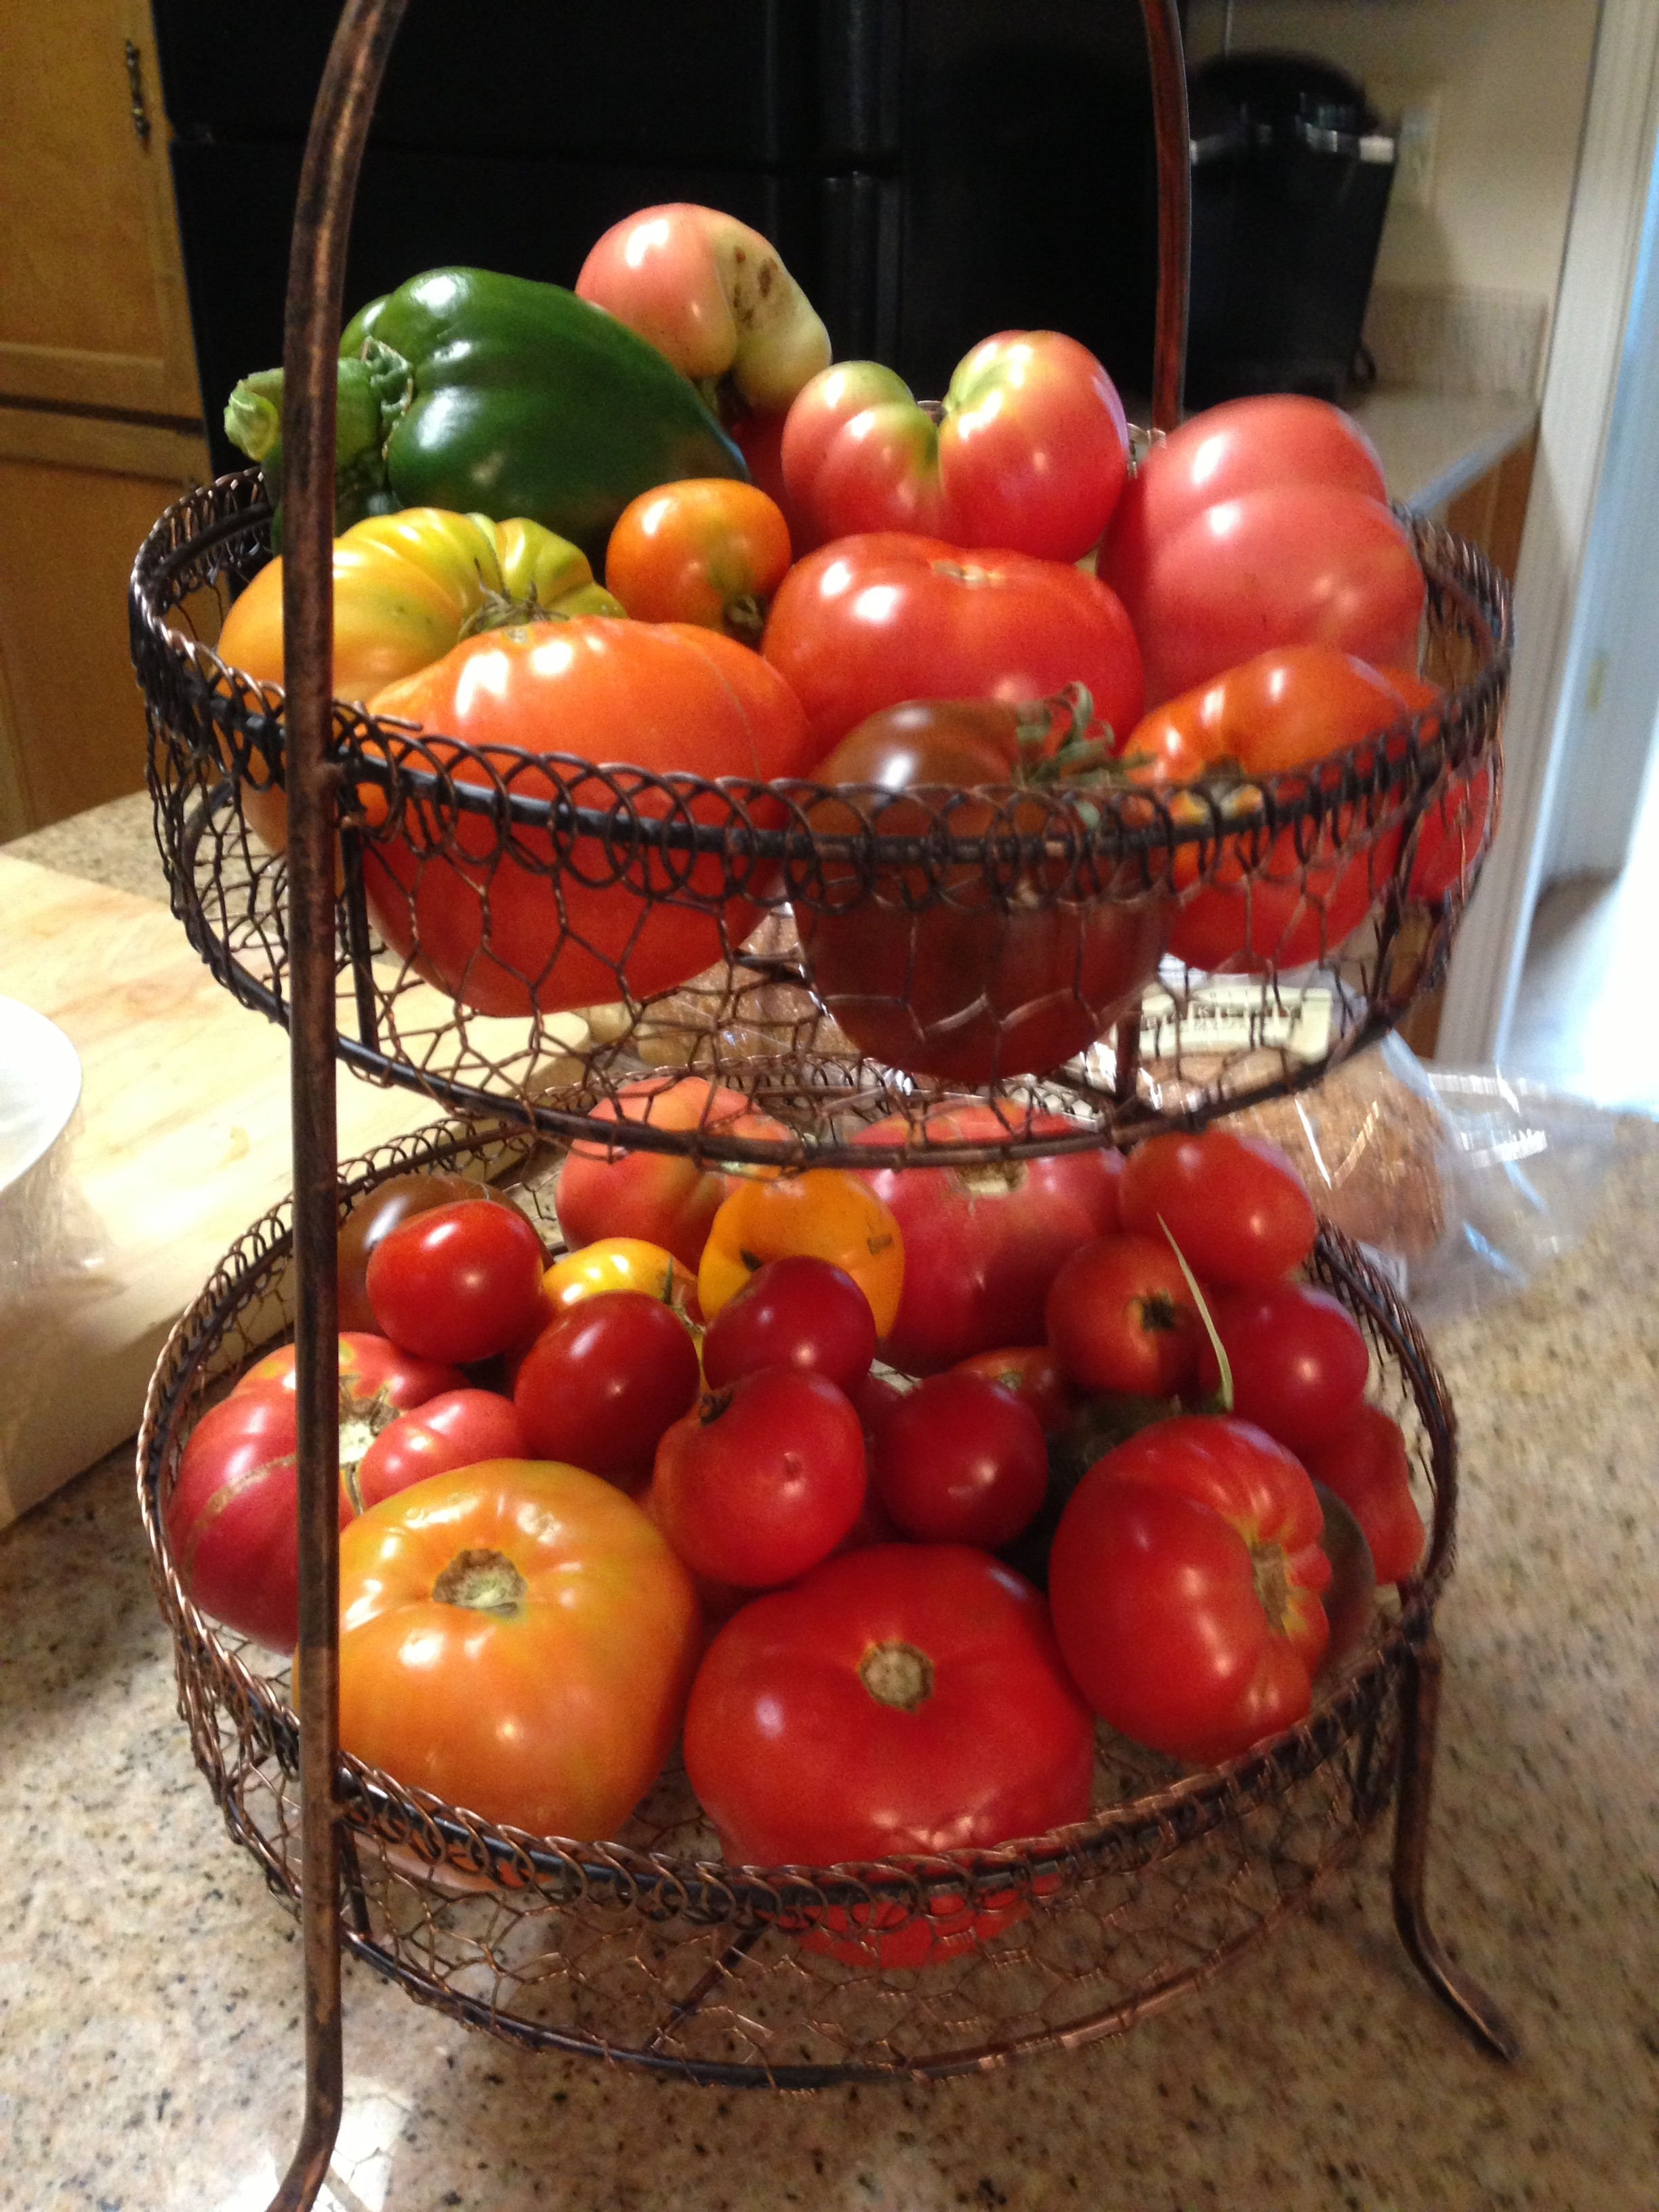 Home grown, Organic, Heirloom tomatoes & peppers